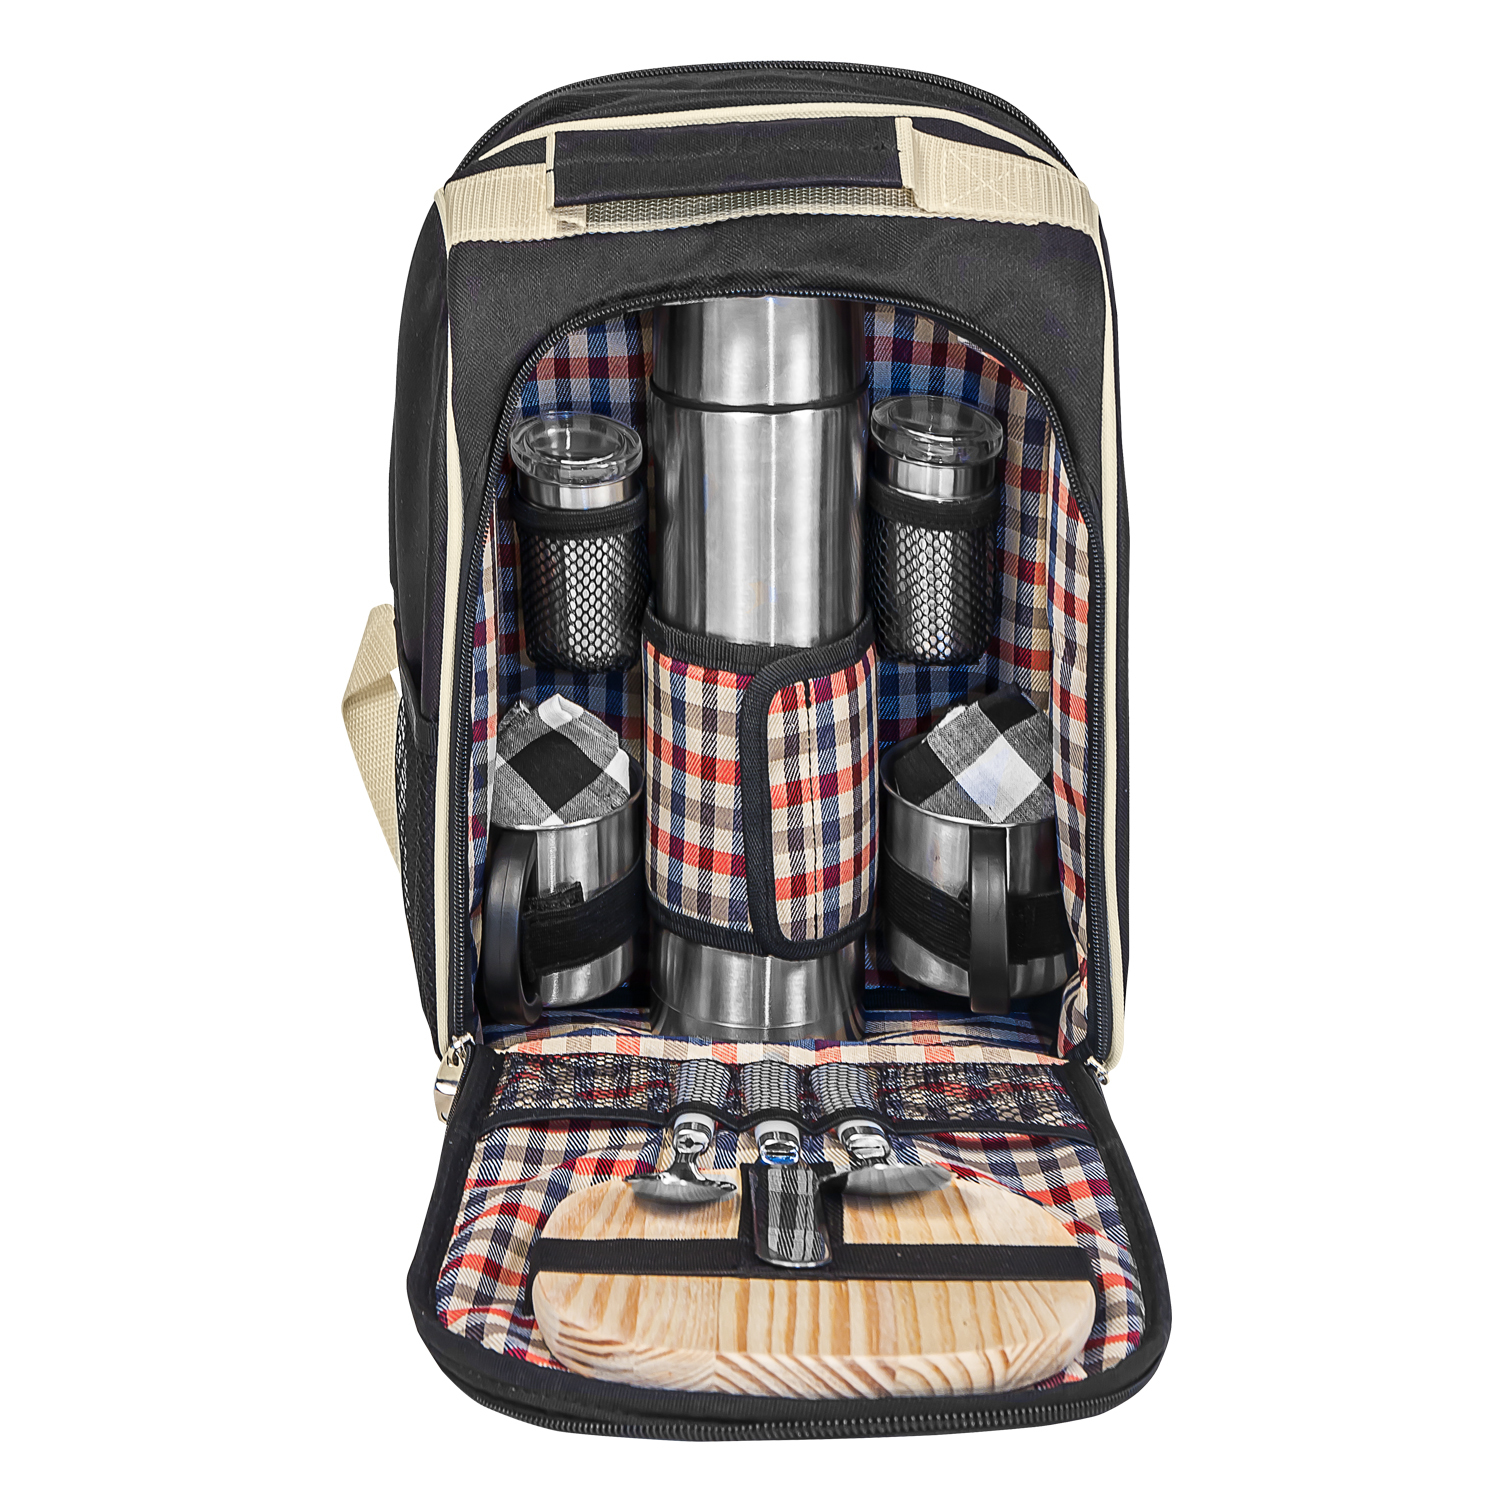 picknick rucksack picknicktasche geschirr besteck thermoskanne k hlfach ebay. Black Bedroom Furniture Sets. Home Design Ideas